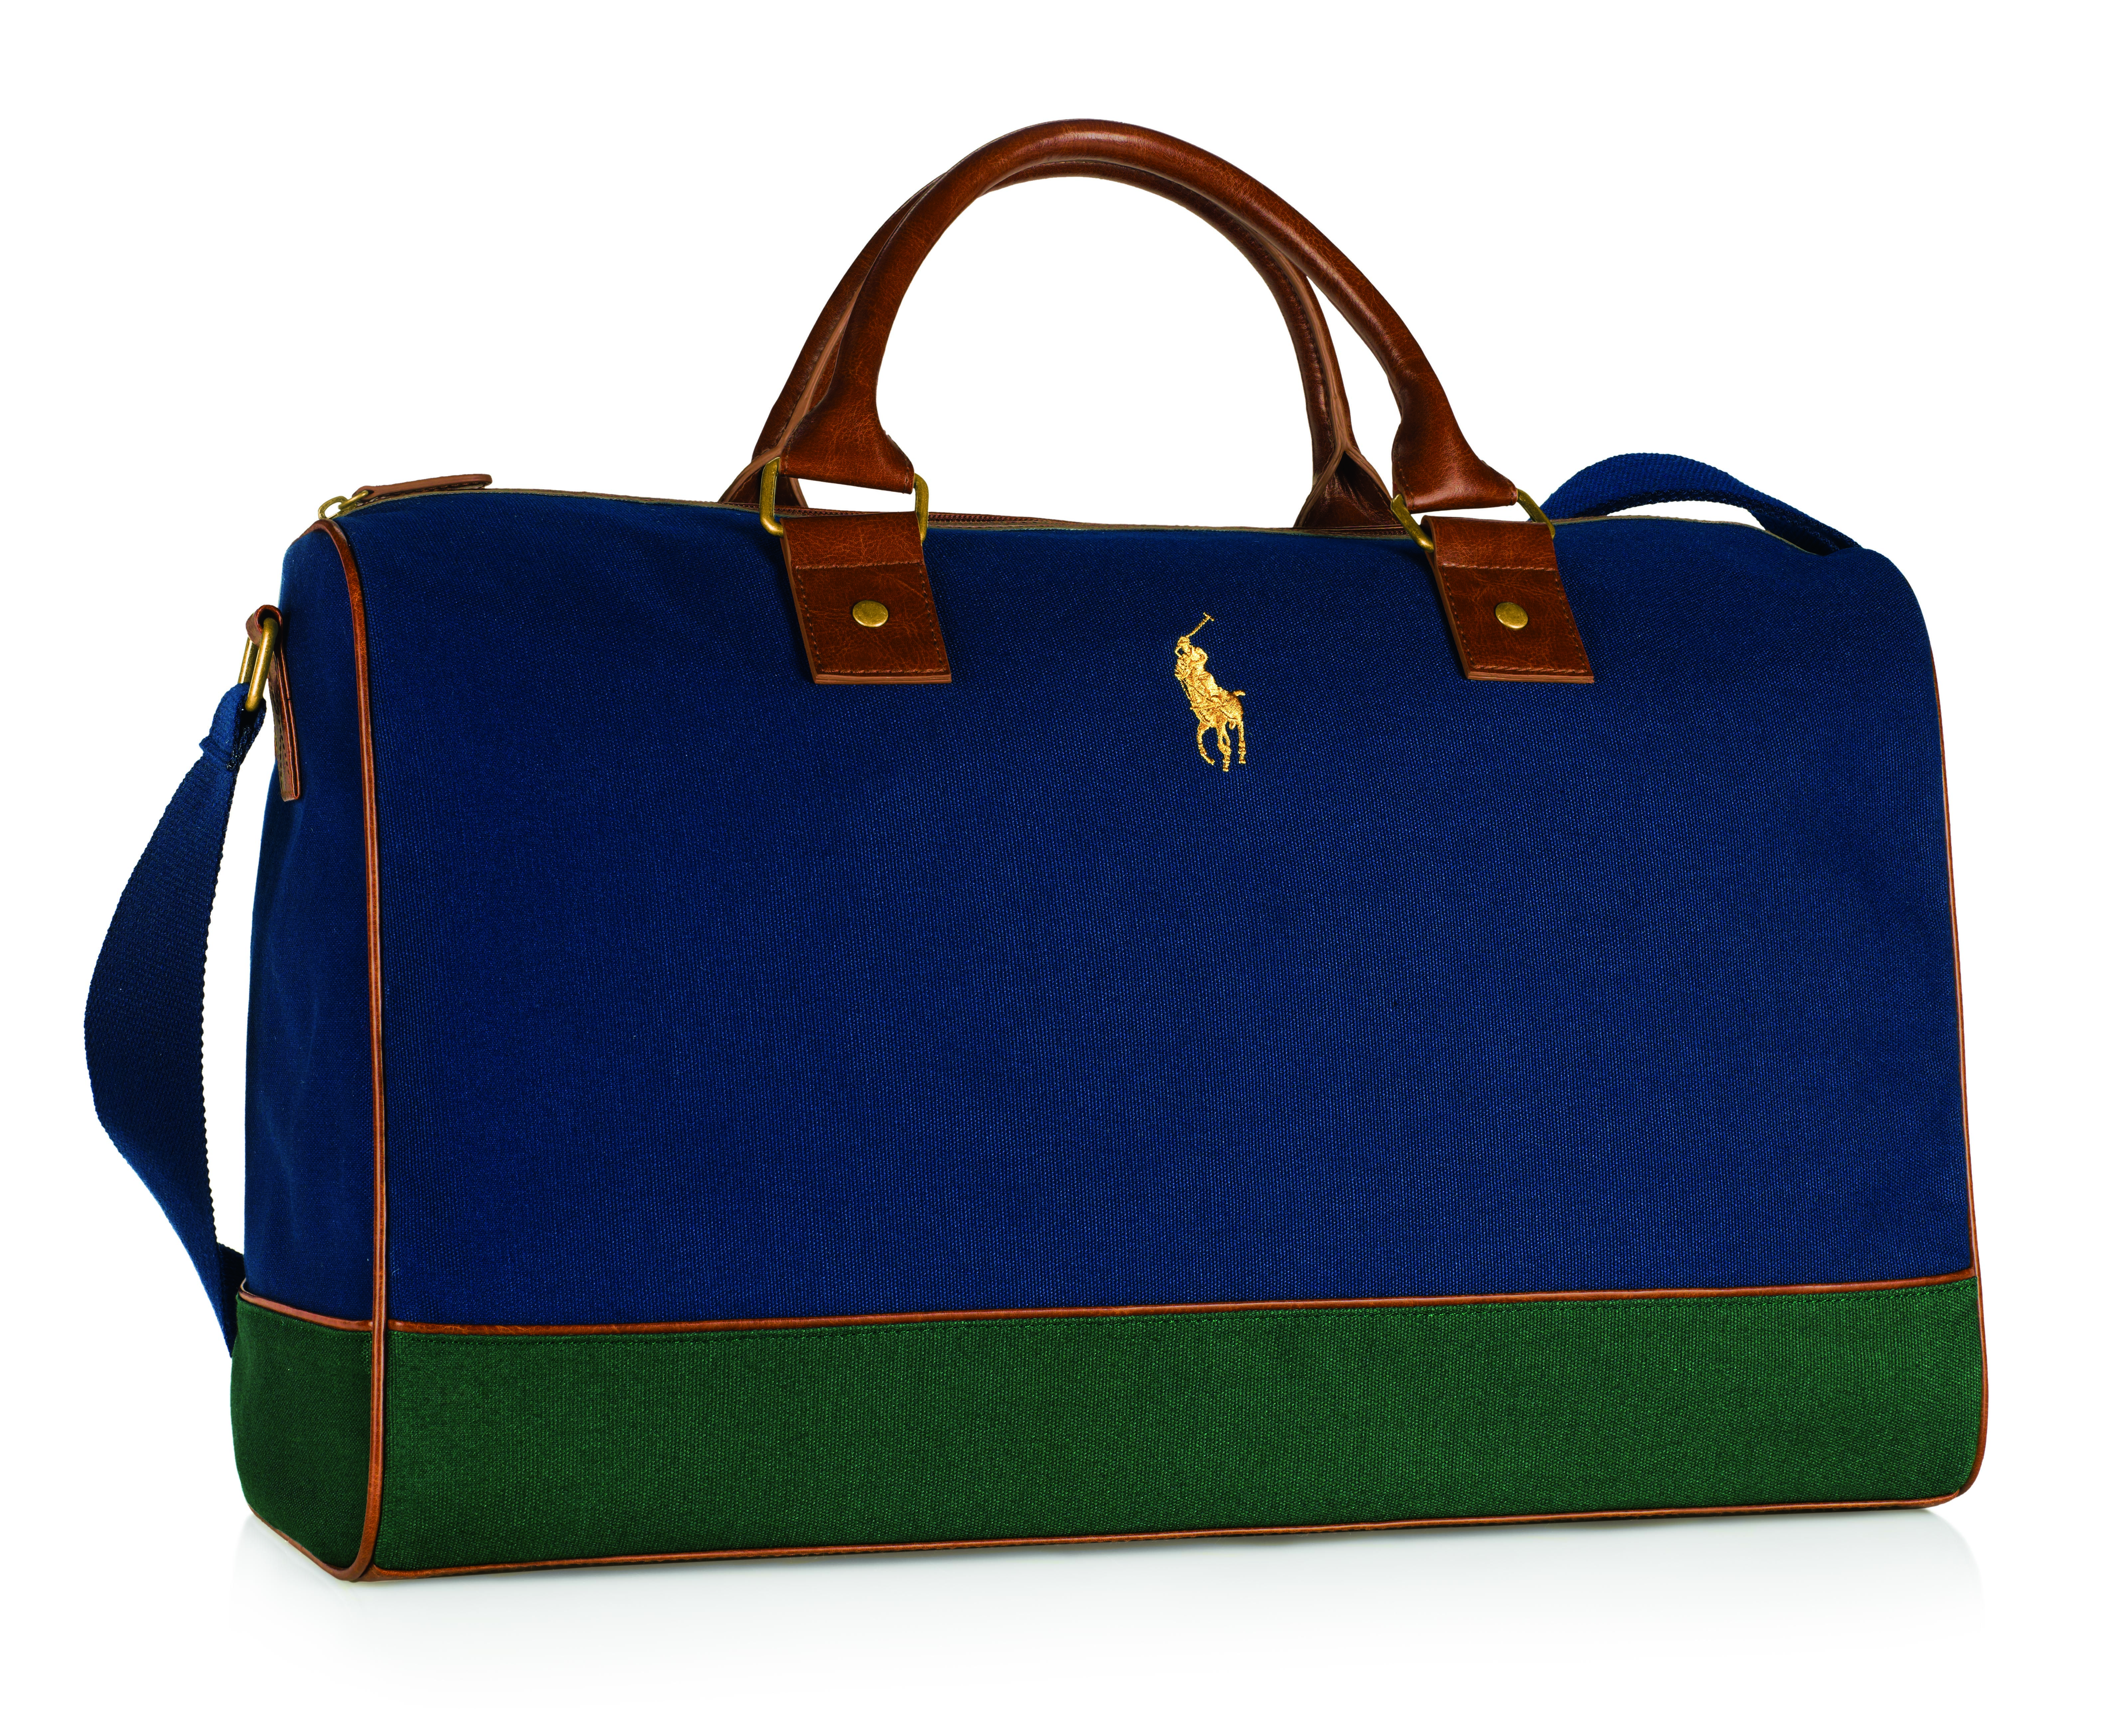 Free Ralph Lauren Weekend Bag With Any Men S Fragrance 50ml Or Above Gift Weekendbag Fathers Day Savings Giftideas